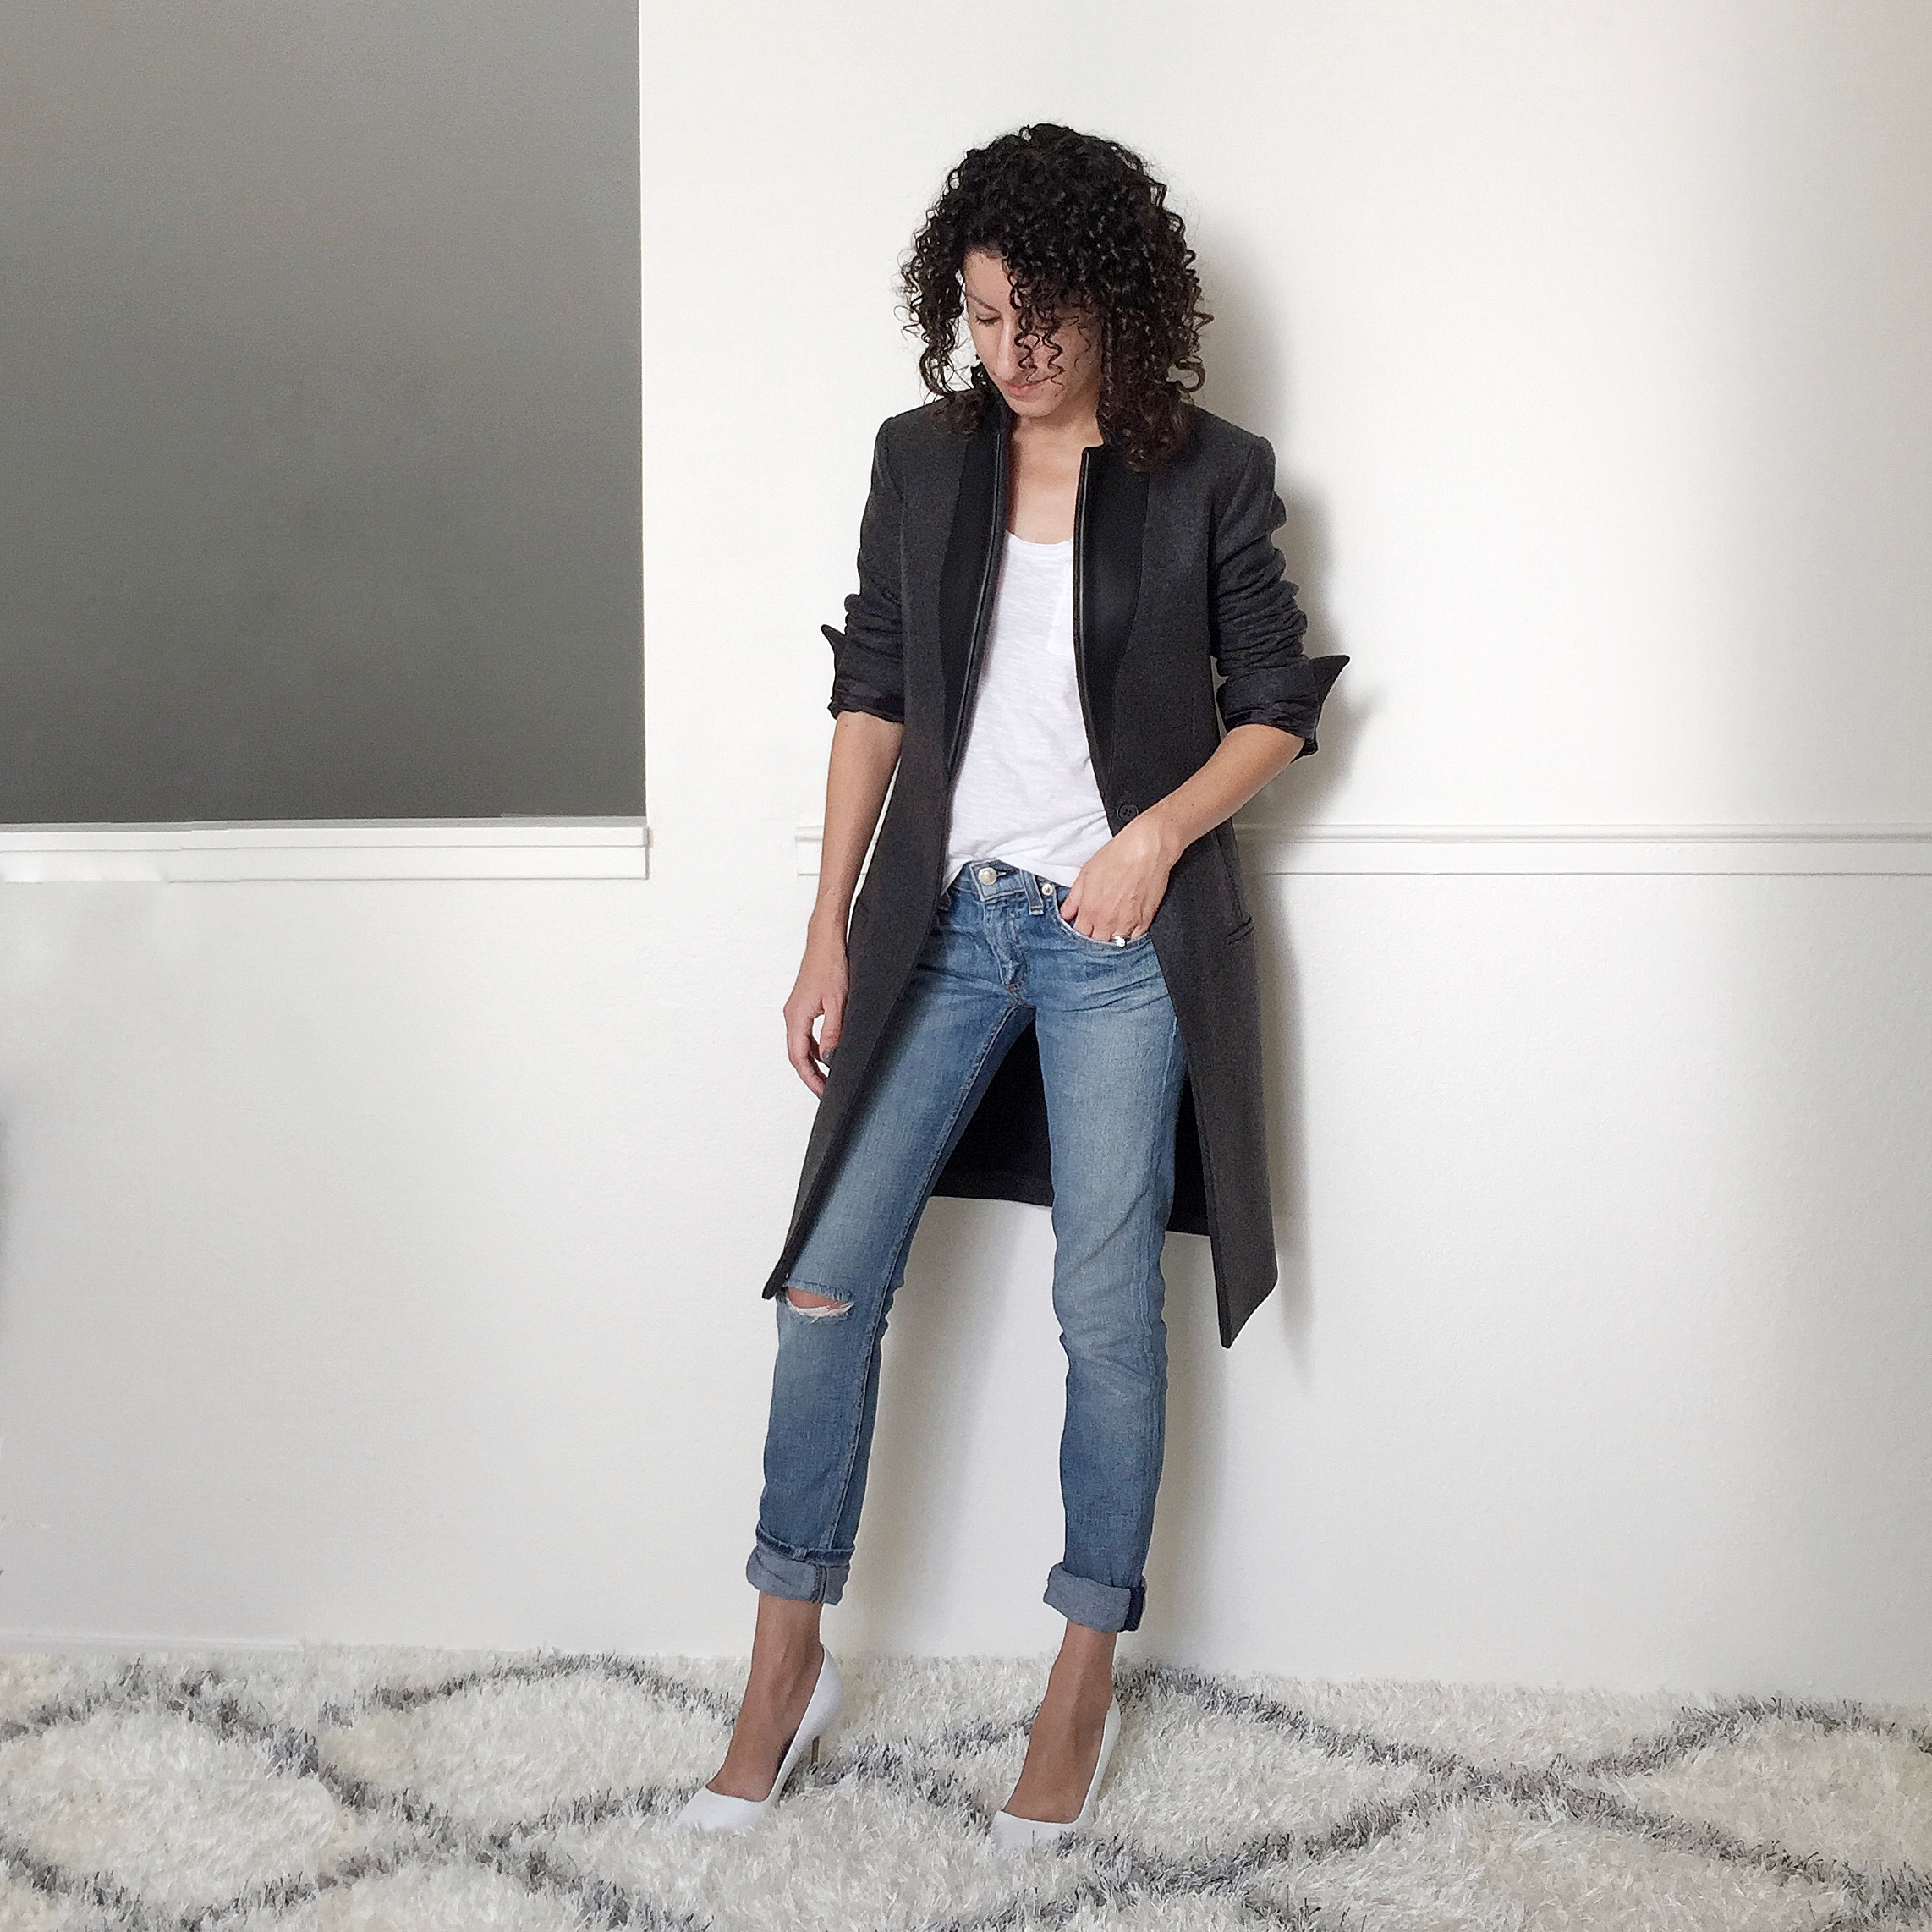 All Saints Coat & Leather Jacket For Petites – Fit Review Friday